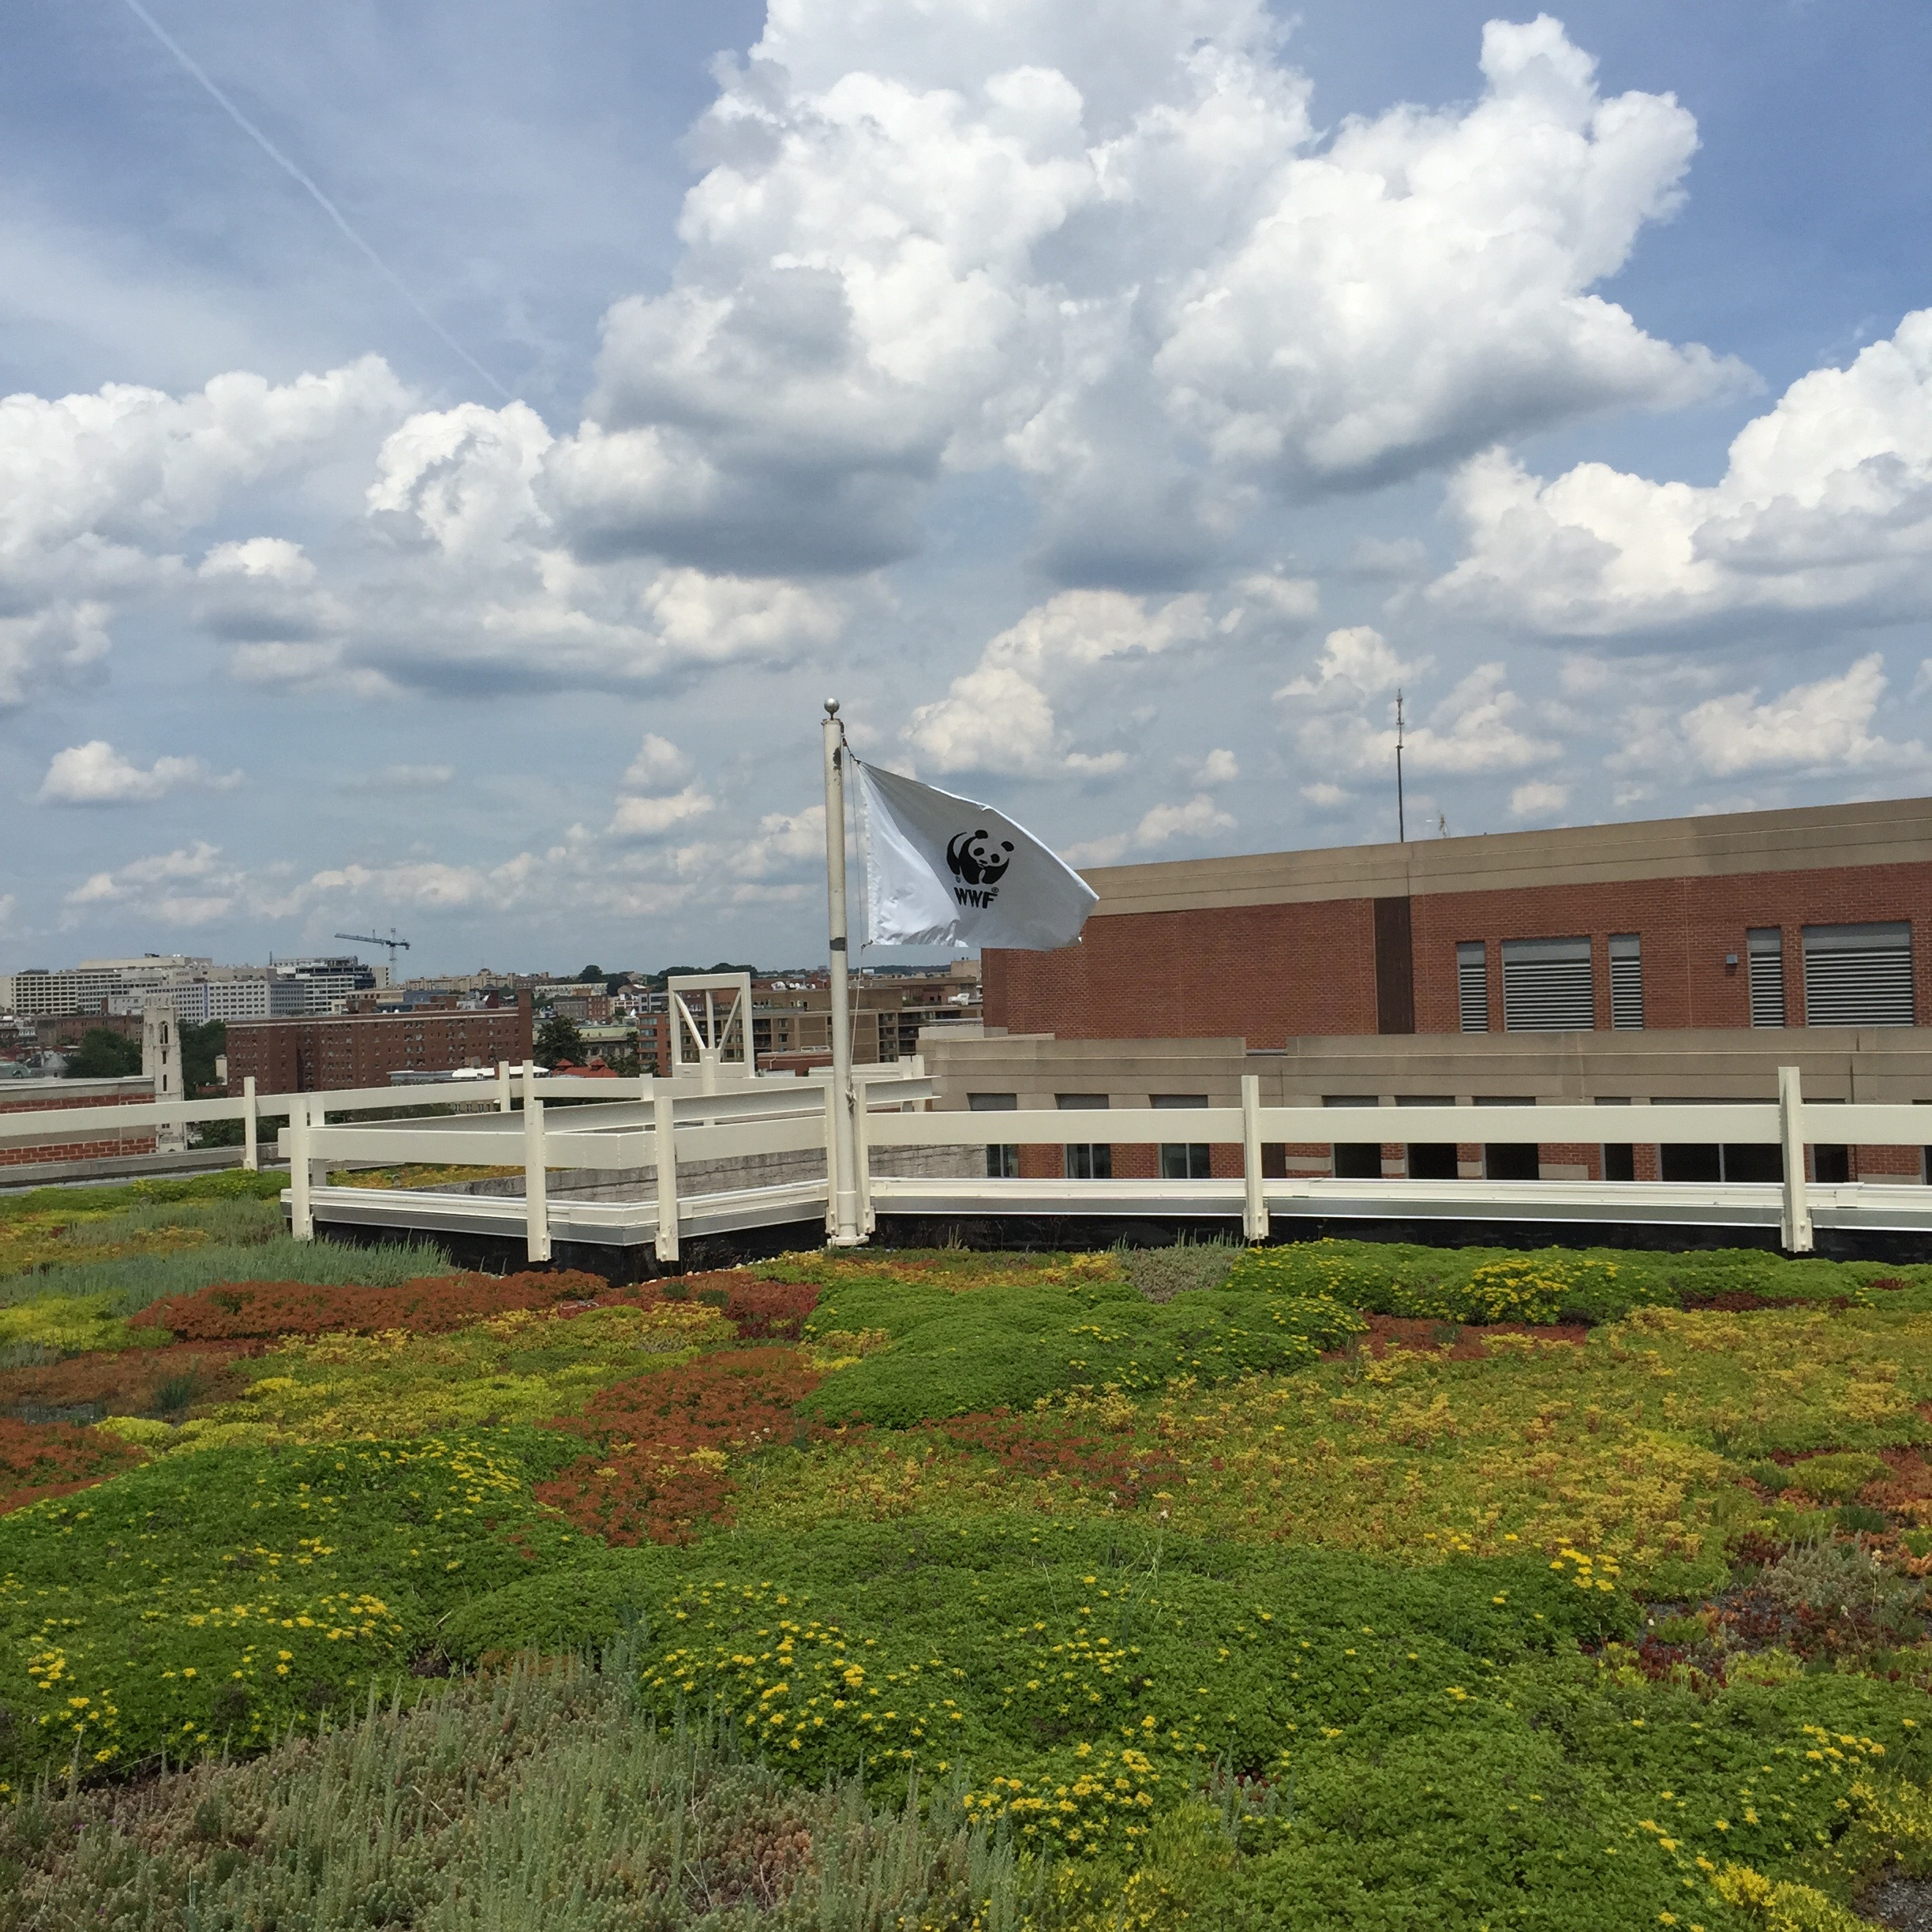 Green Roofs - Green roofs are covered in vegetation, which provides shading, reduces building energy use, cleans the air, and absorbs and better manages water.